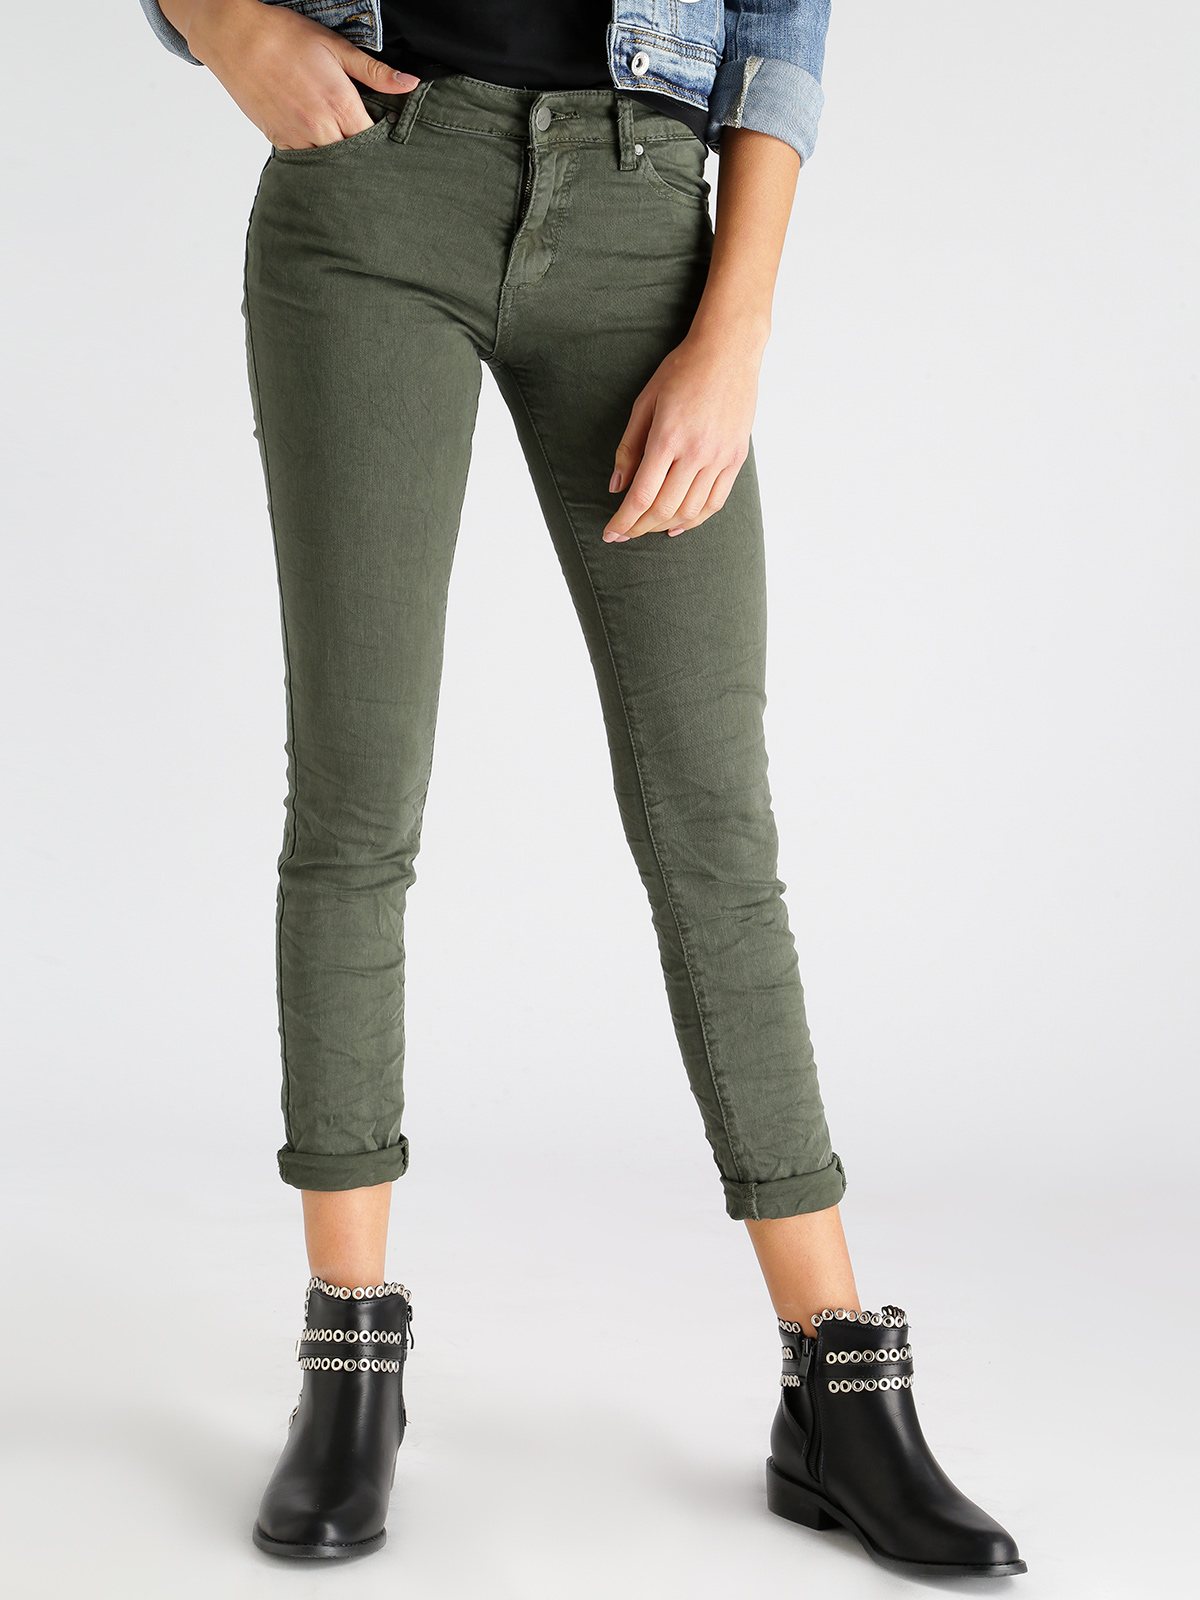 Jeans Pants Effect Wrinkled